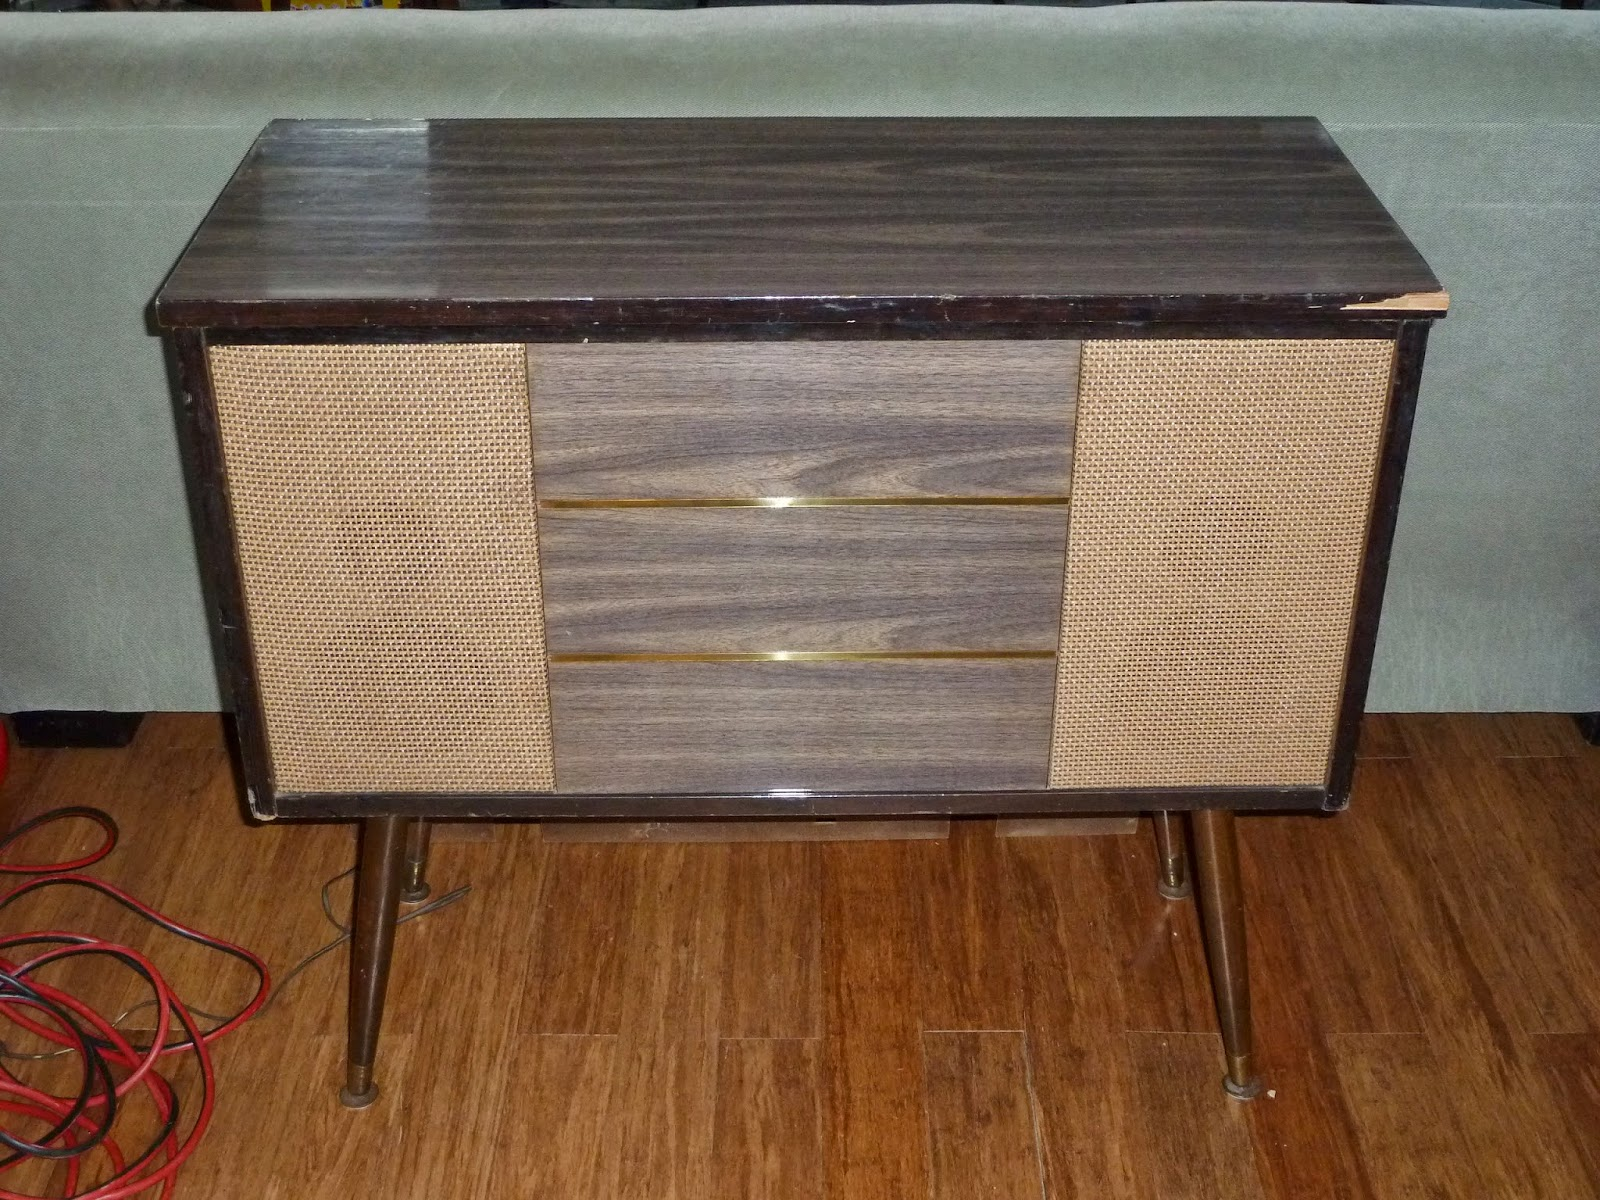 Old To New Again: Delmonico Mid Century Stereo Console - Updated